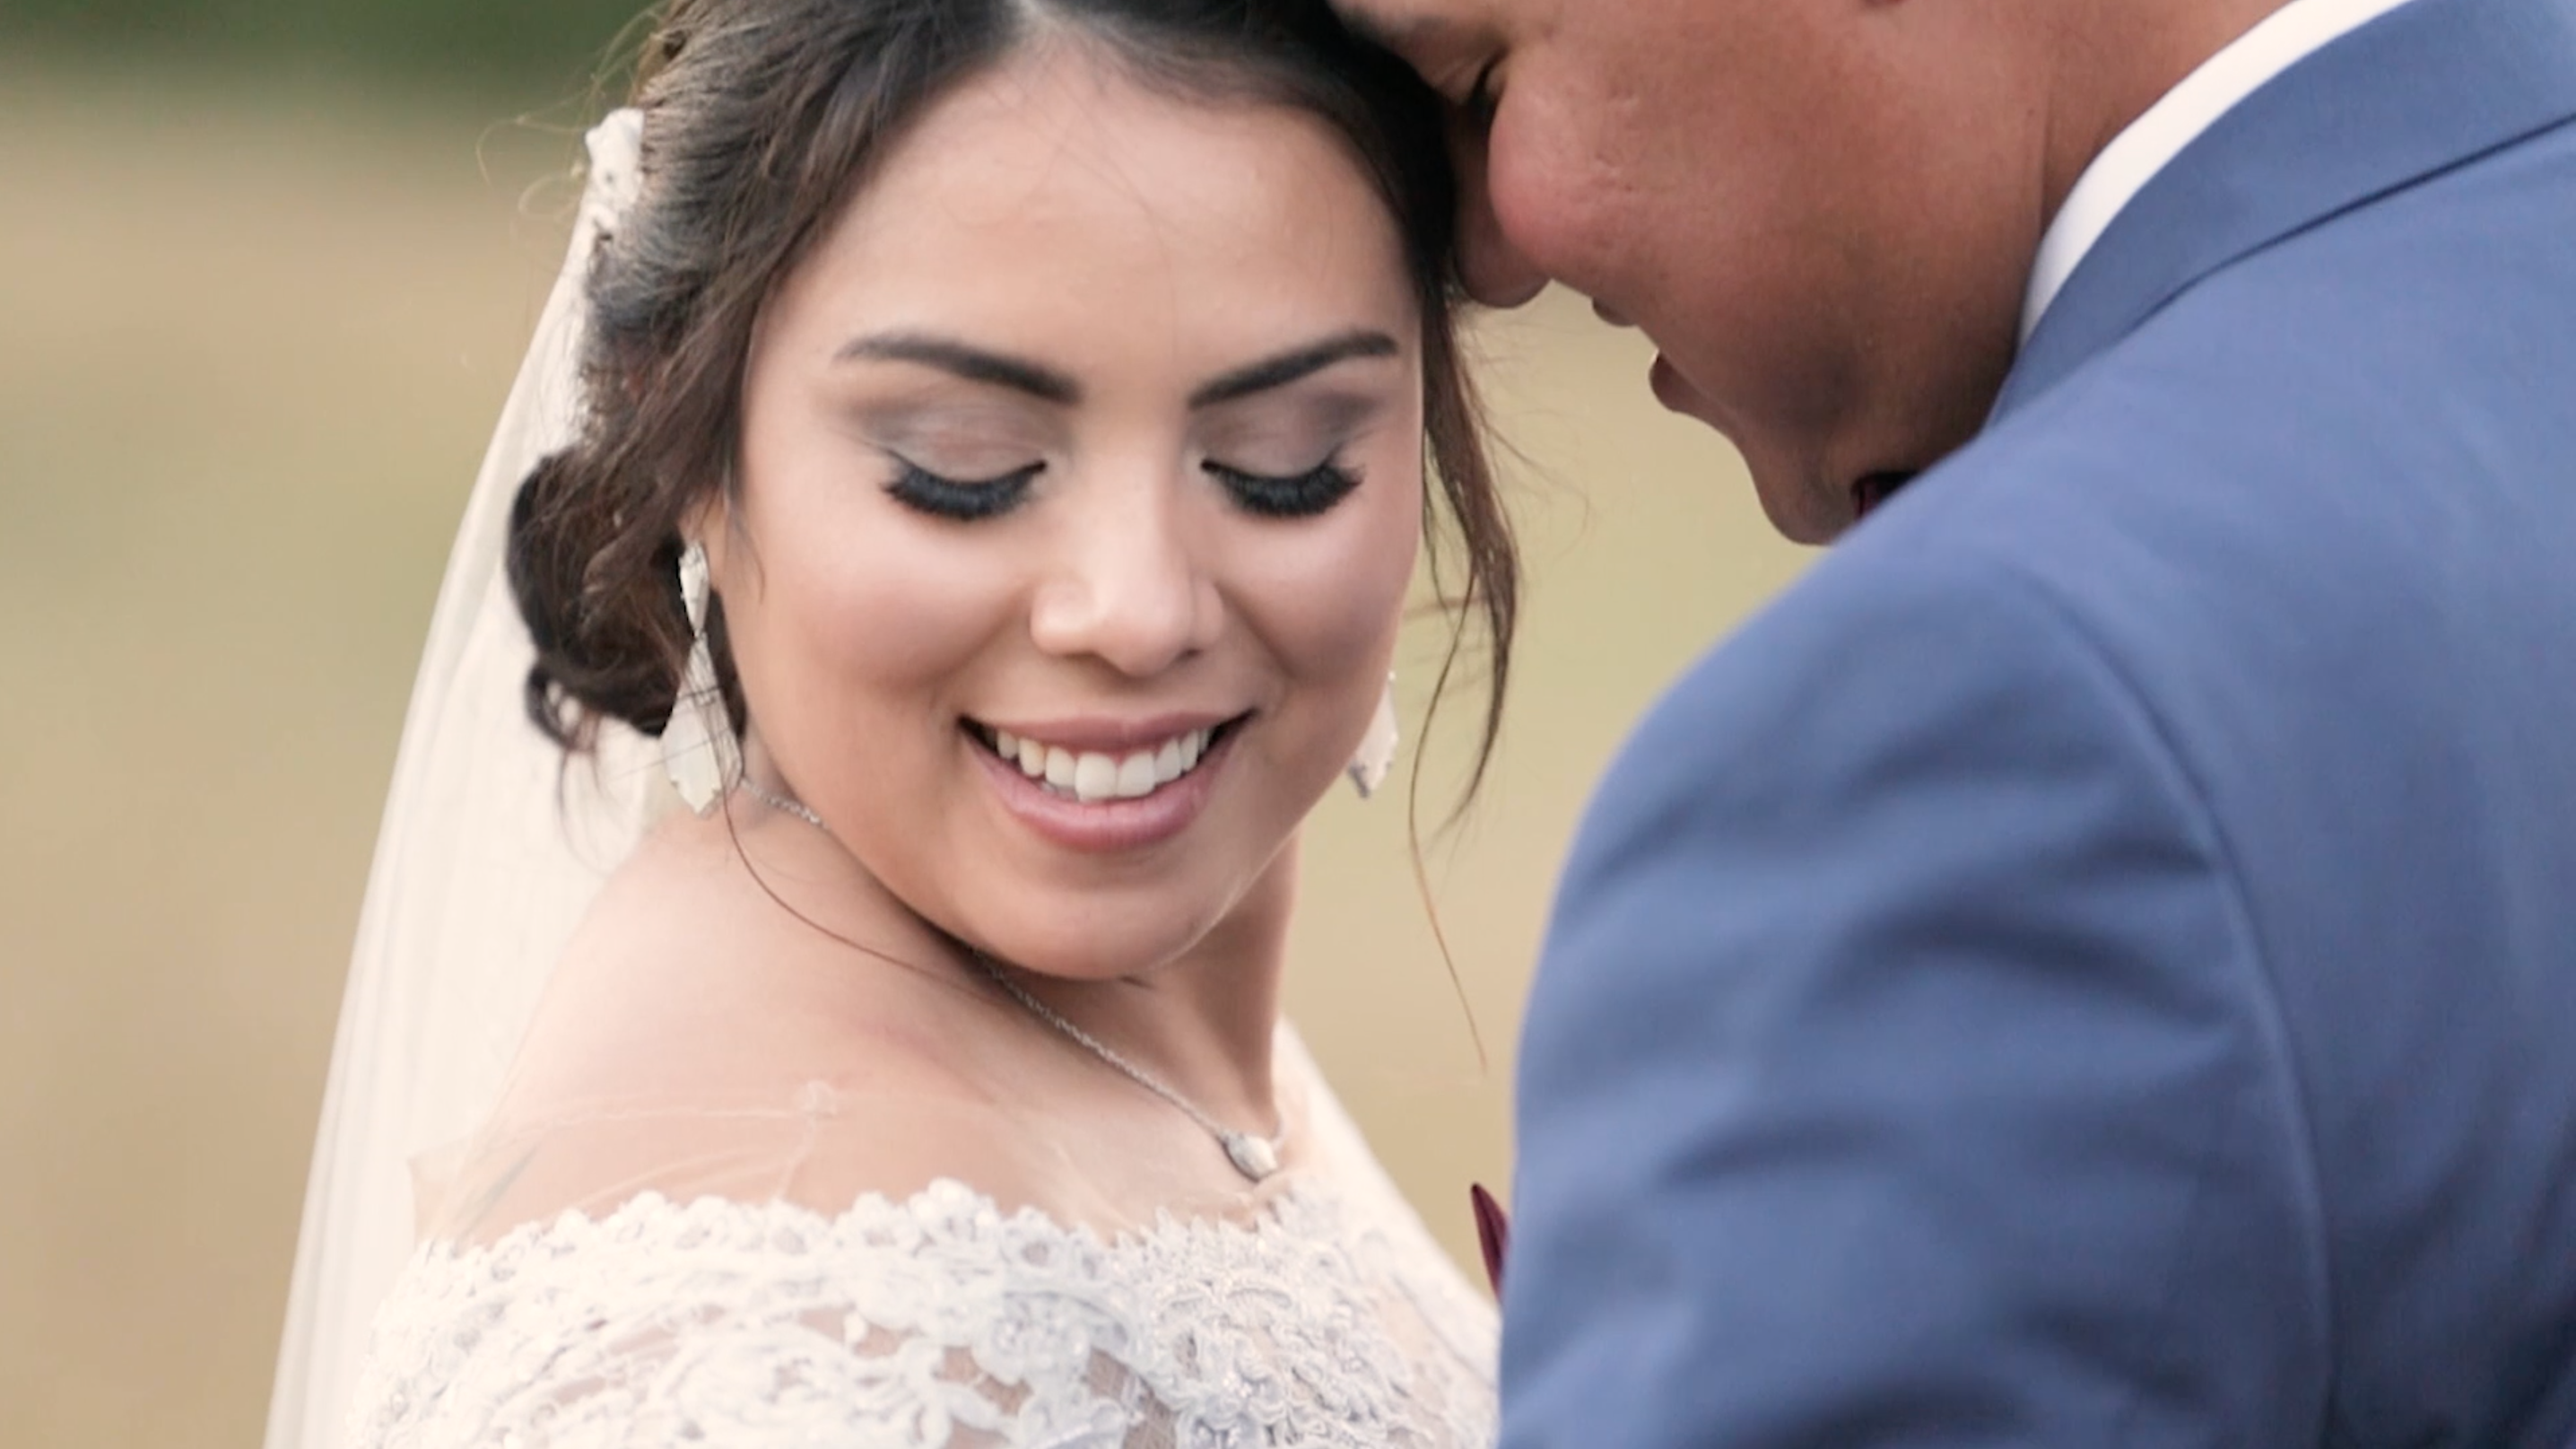 Becky + Adrian | Dripping Springs, Texas | Memory Lane Event Center